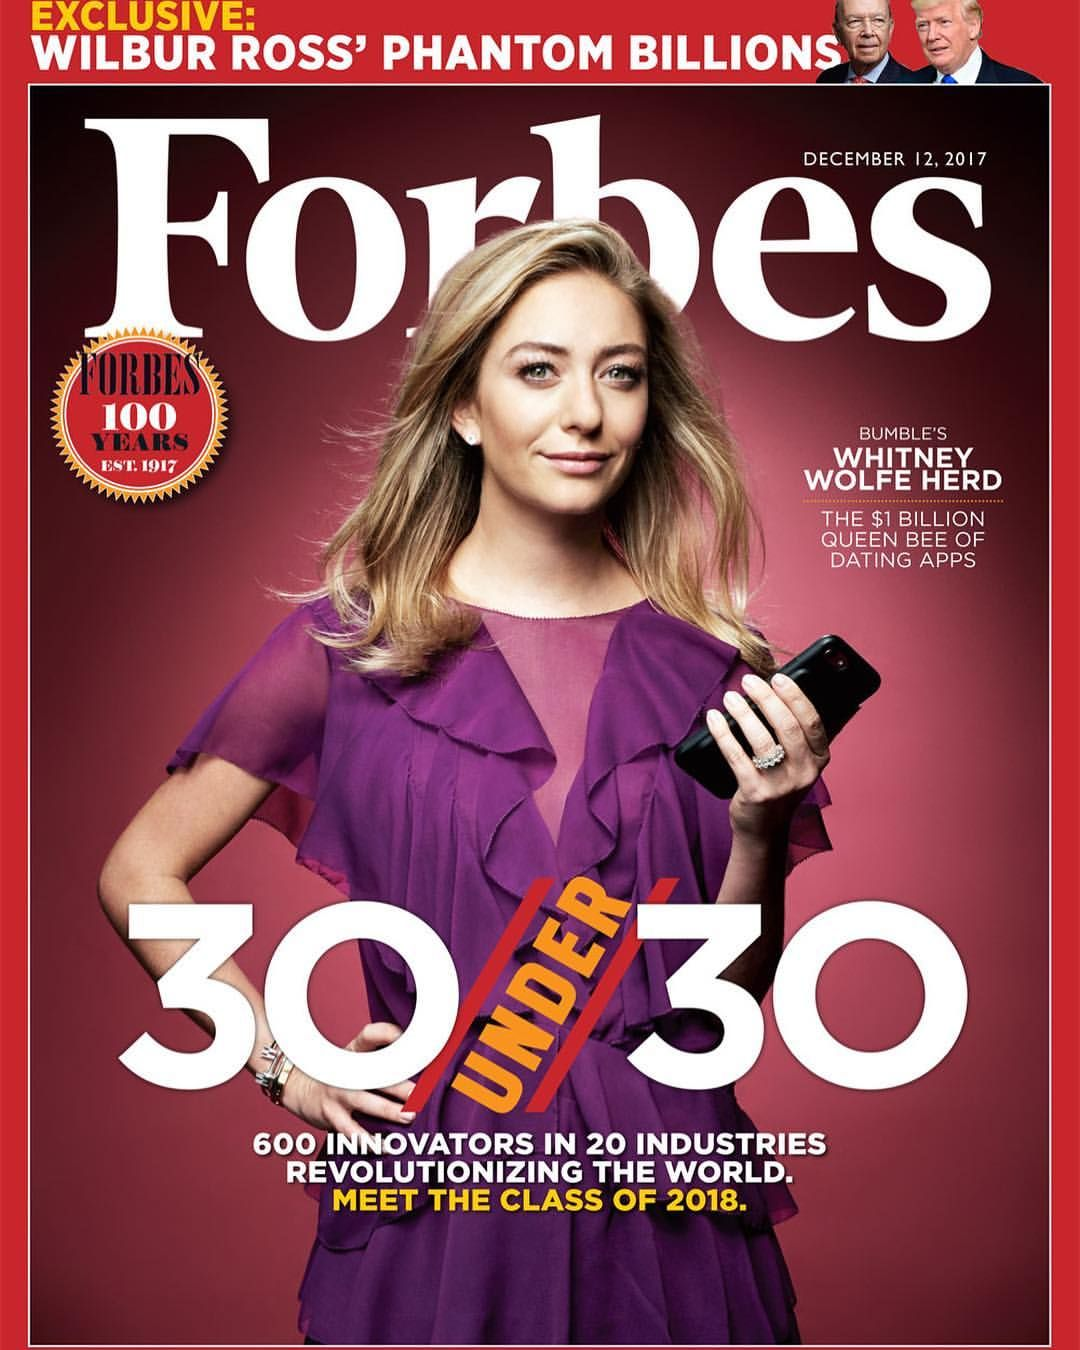 The Cover Of Forbes There Are No Words To Express My Gratitude This Morning I Am Tempted To Say I Can T Believe It But I Whitney Wolfe Forbes Cover Forbes